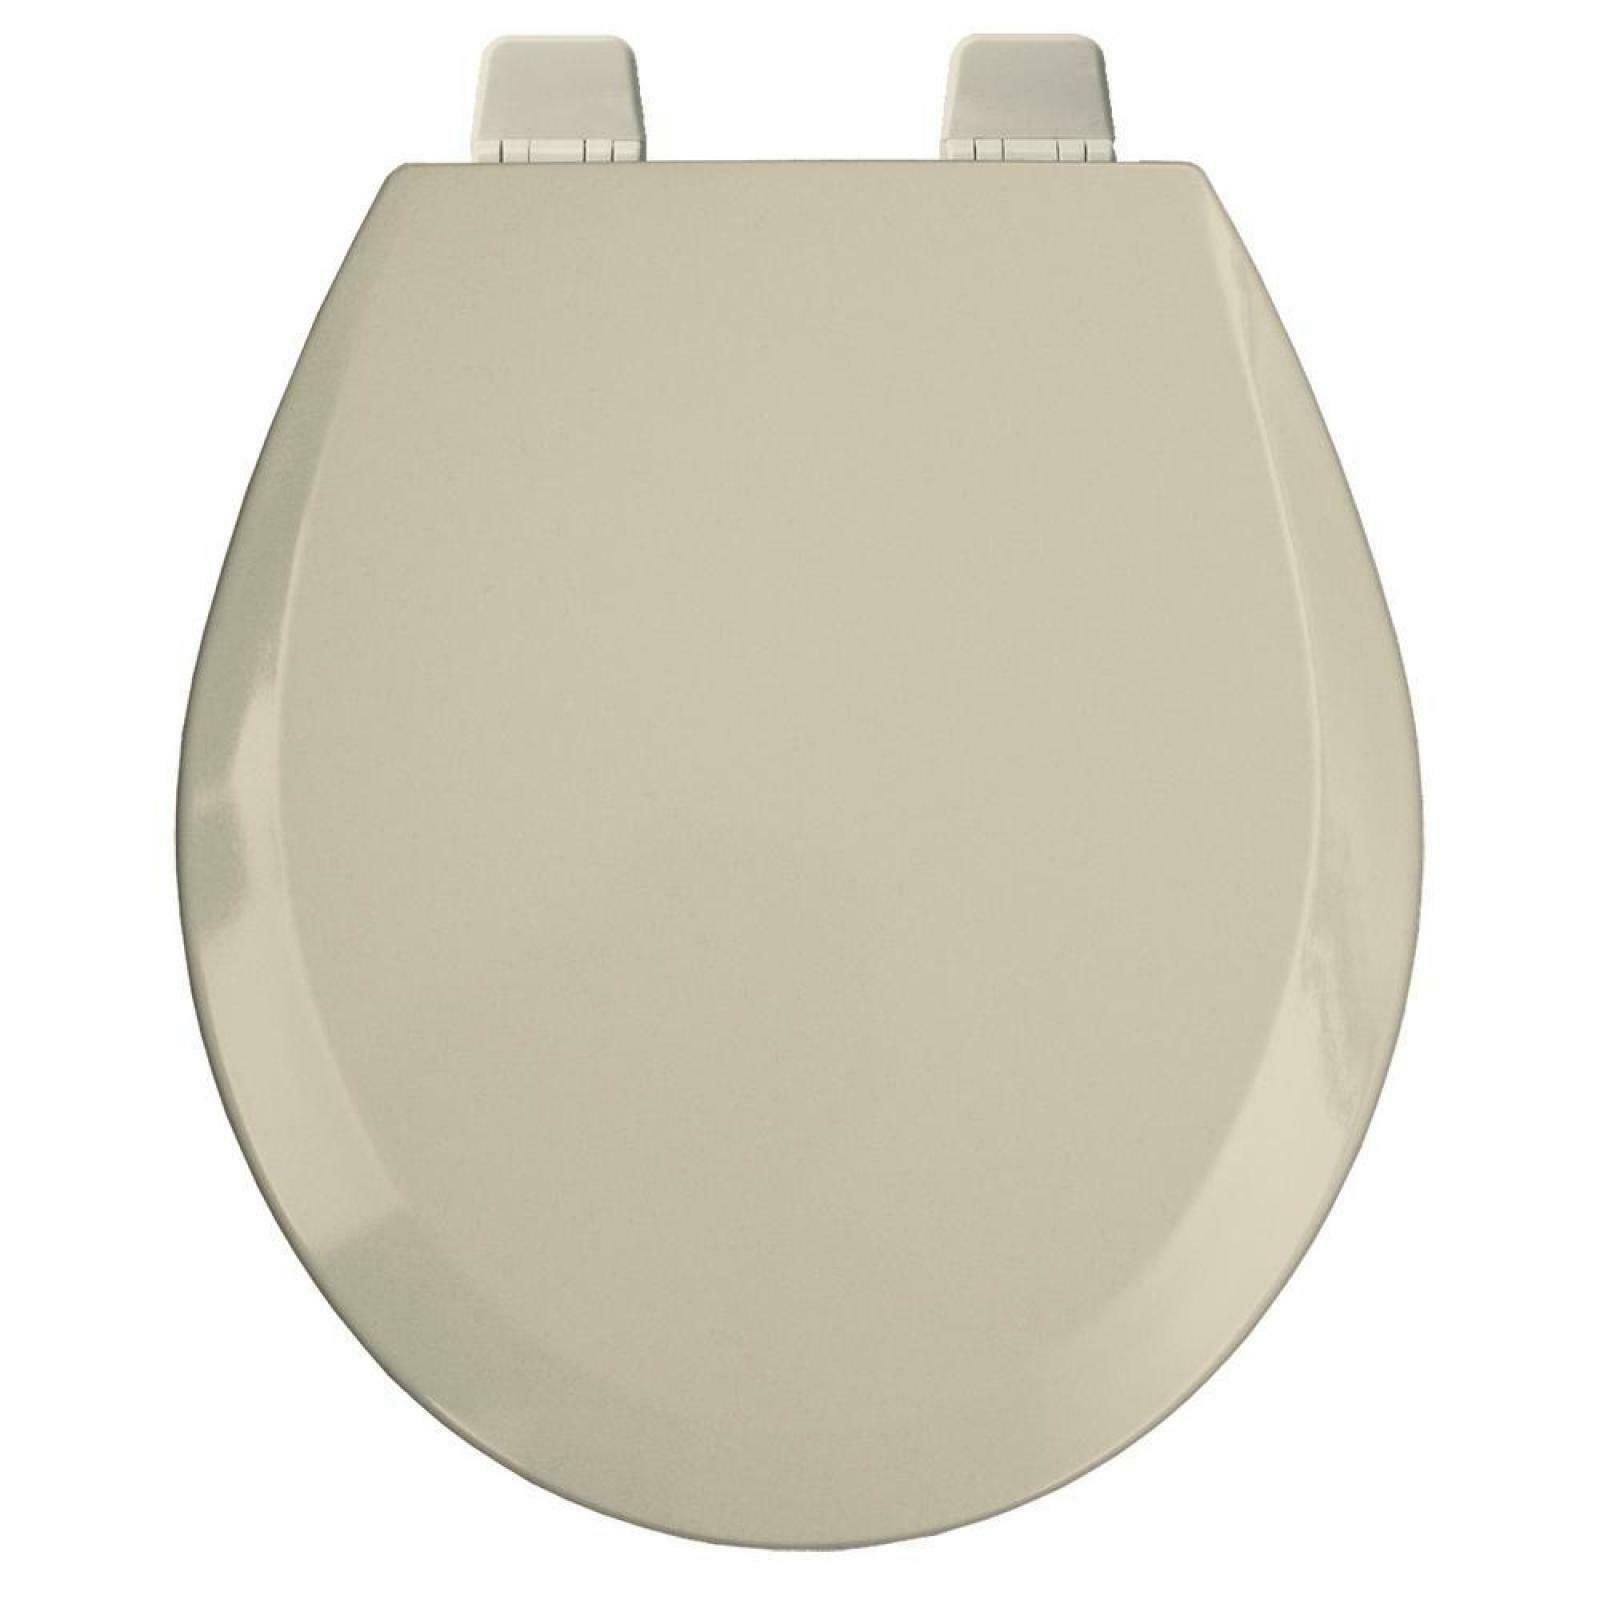 NEW Round Open Front Toilet Seat Lid Cover Beige Wood Hardware Hinges Bumpers